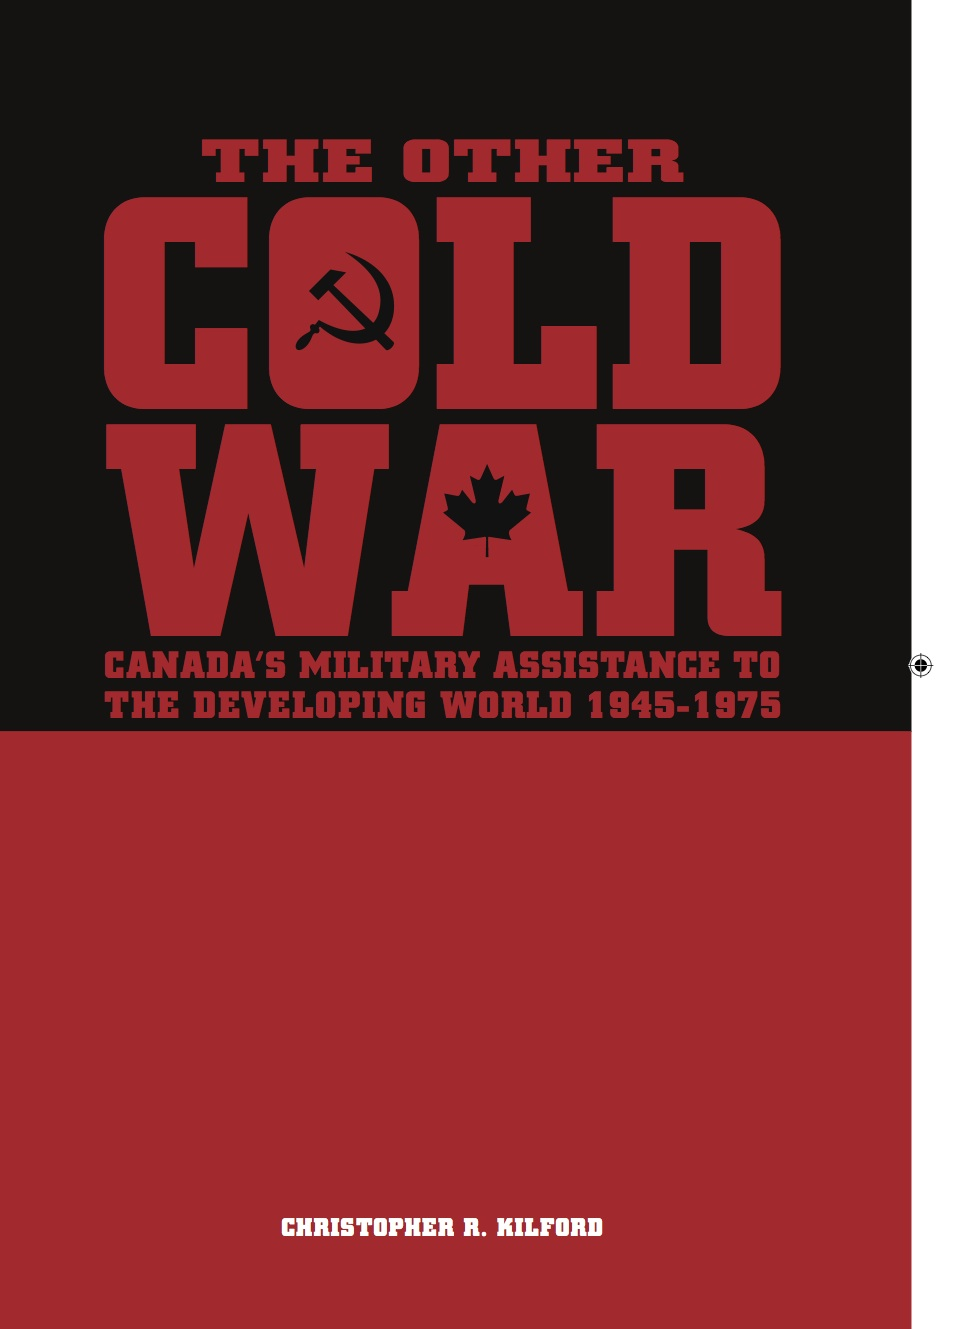 How did canada grow as a nation during the cold war?